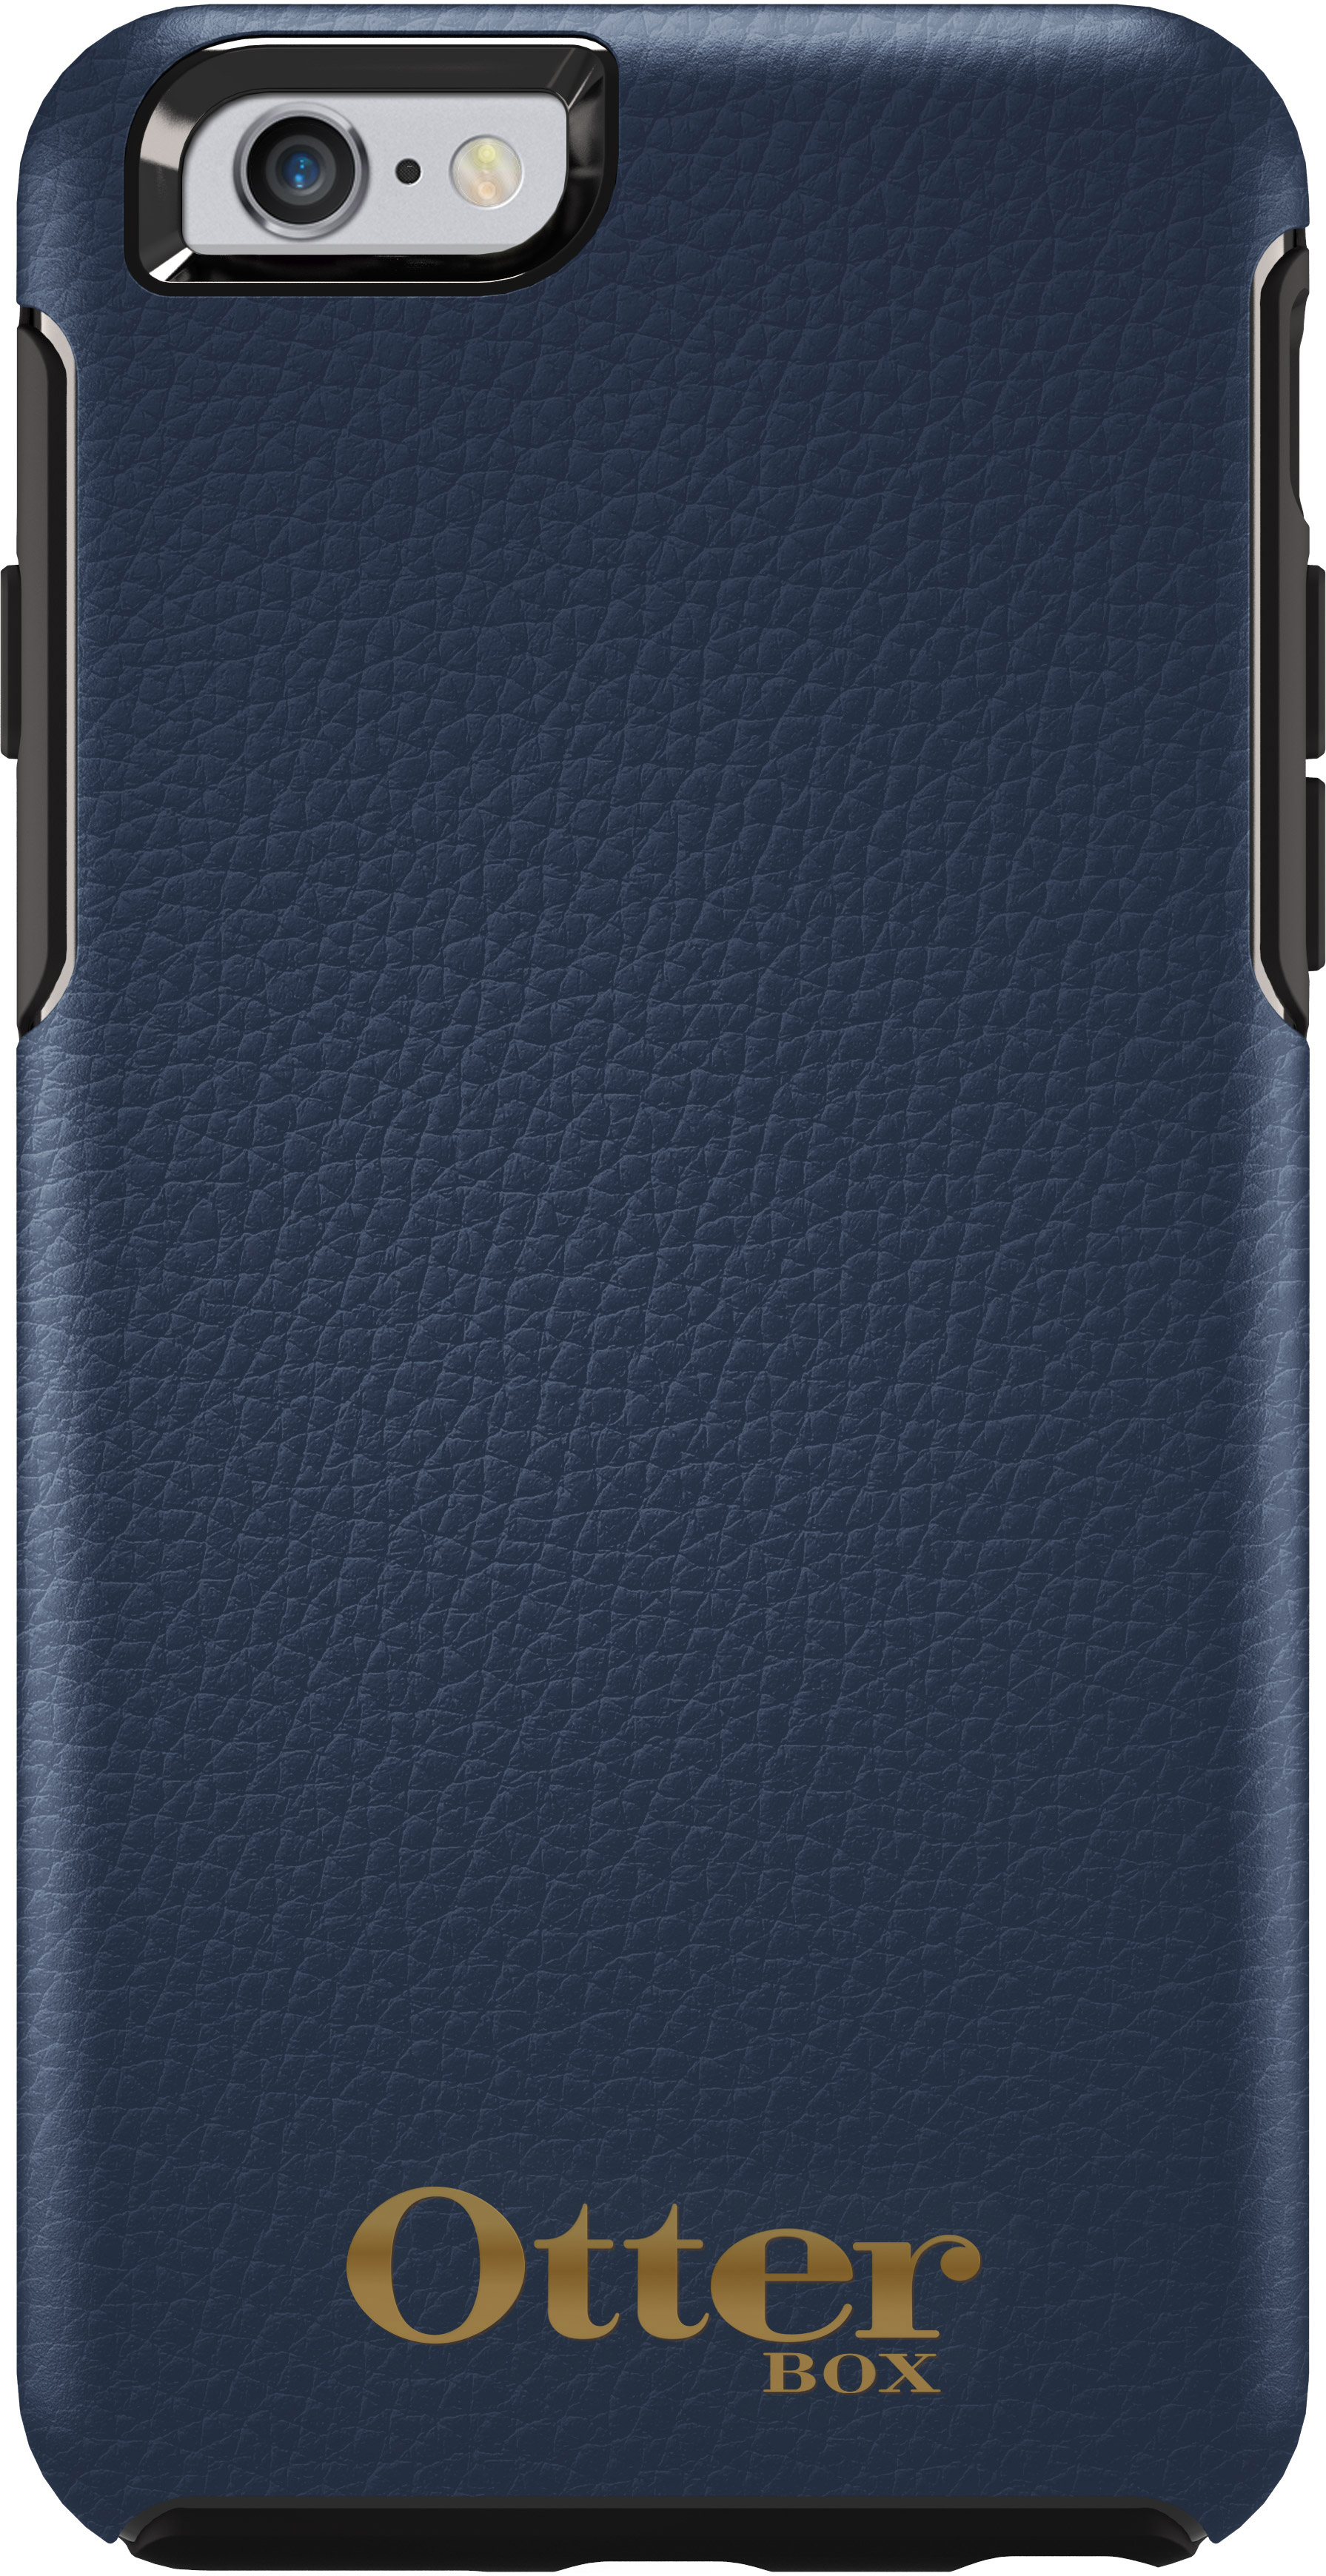 OtterBox Leather iPhone 6s plus case